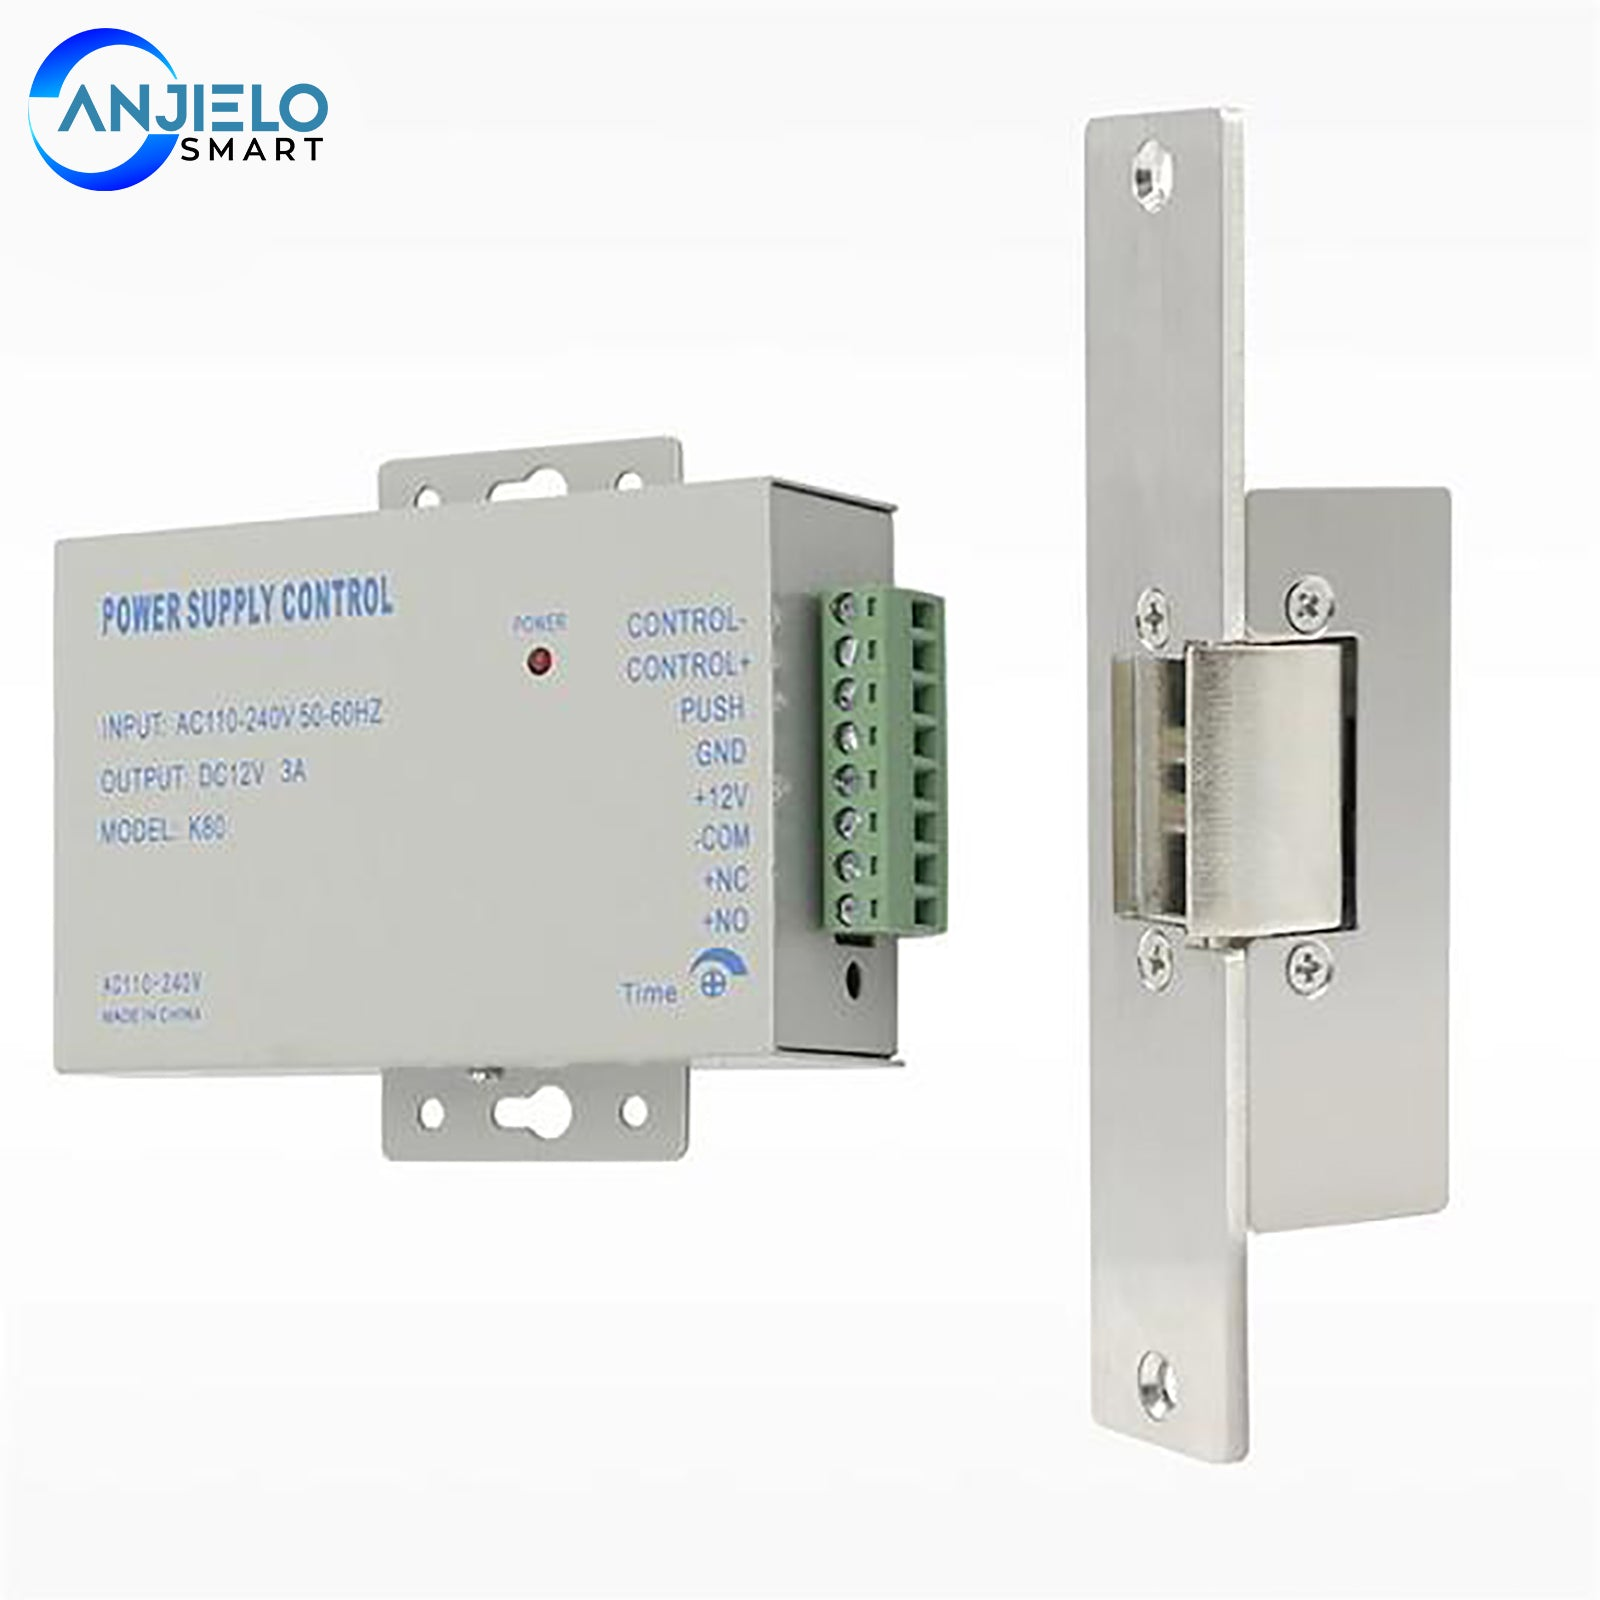 AnjieloSmart Electric Strike Lock Narrow Type Electric Door Lock with Power Supply Control